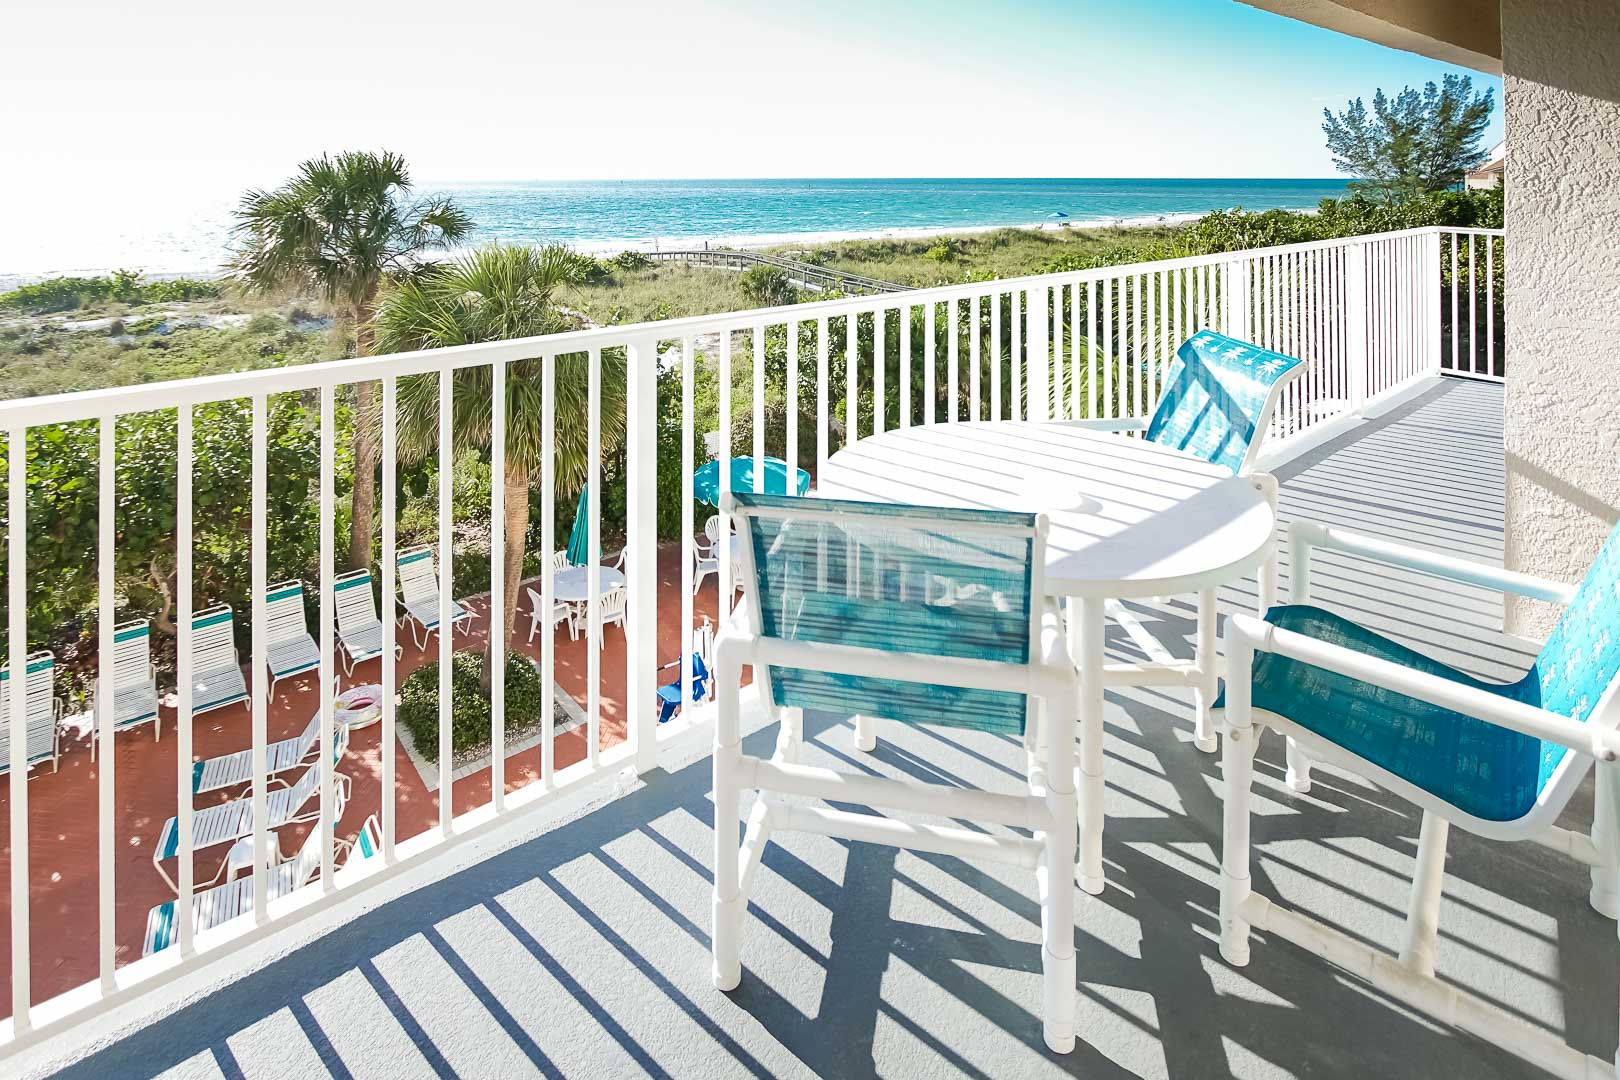 An expansive balcony with an ocean view at VRI's Sand Pebble Resort in Treasure Island, Florida.